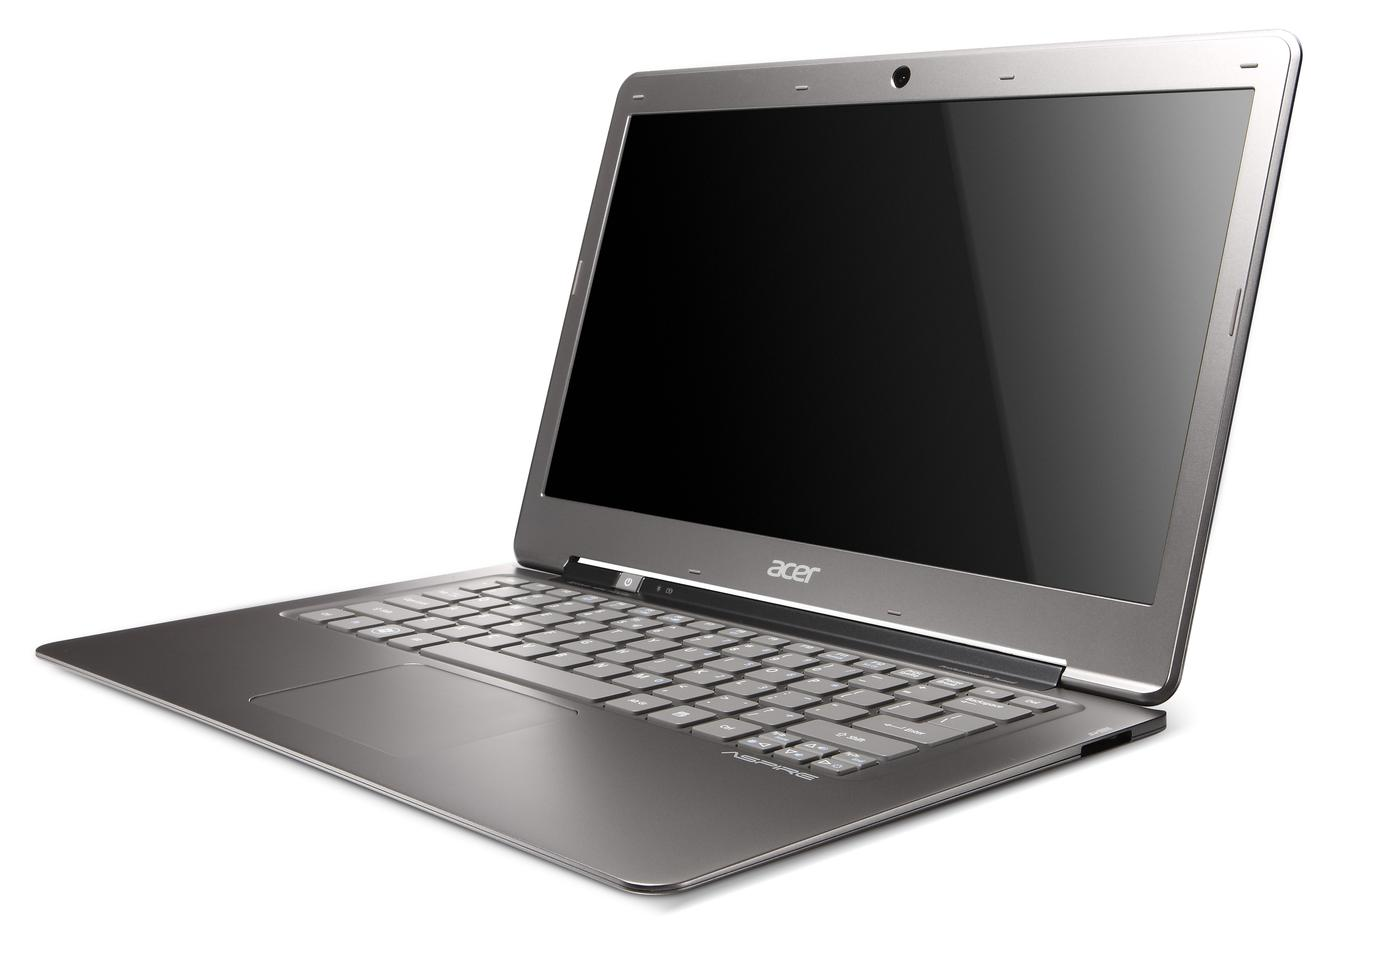 The Acer Aspire S3 Ultrabook has a 13.3-inch high definition, LED-backlit display, full chiclet-style keyboard and is just 13mm (0.51-inch) thin